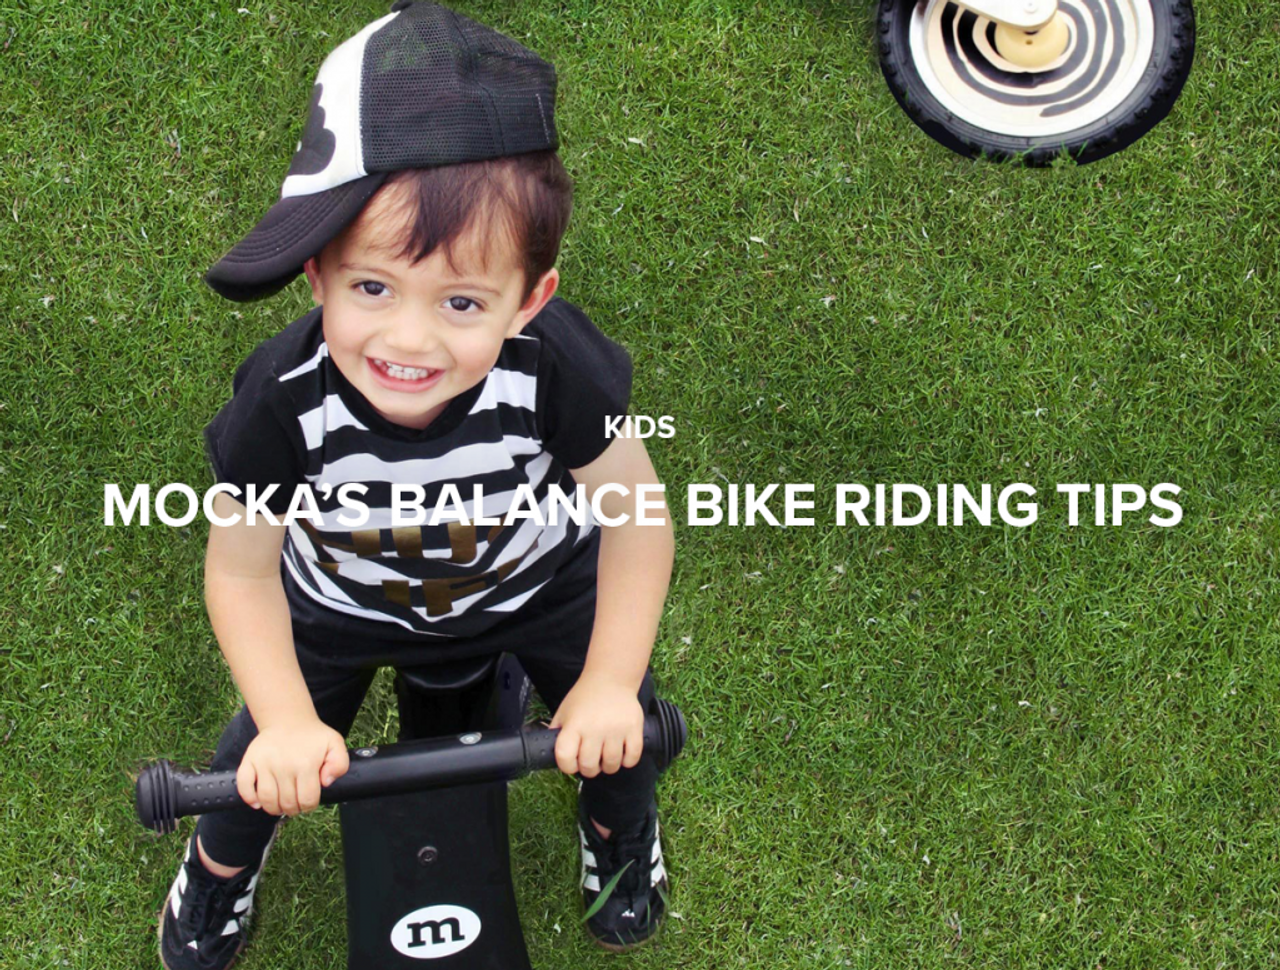 Mocka's Balance Bike Riding Tips